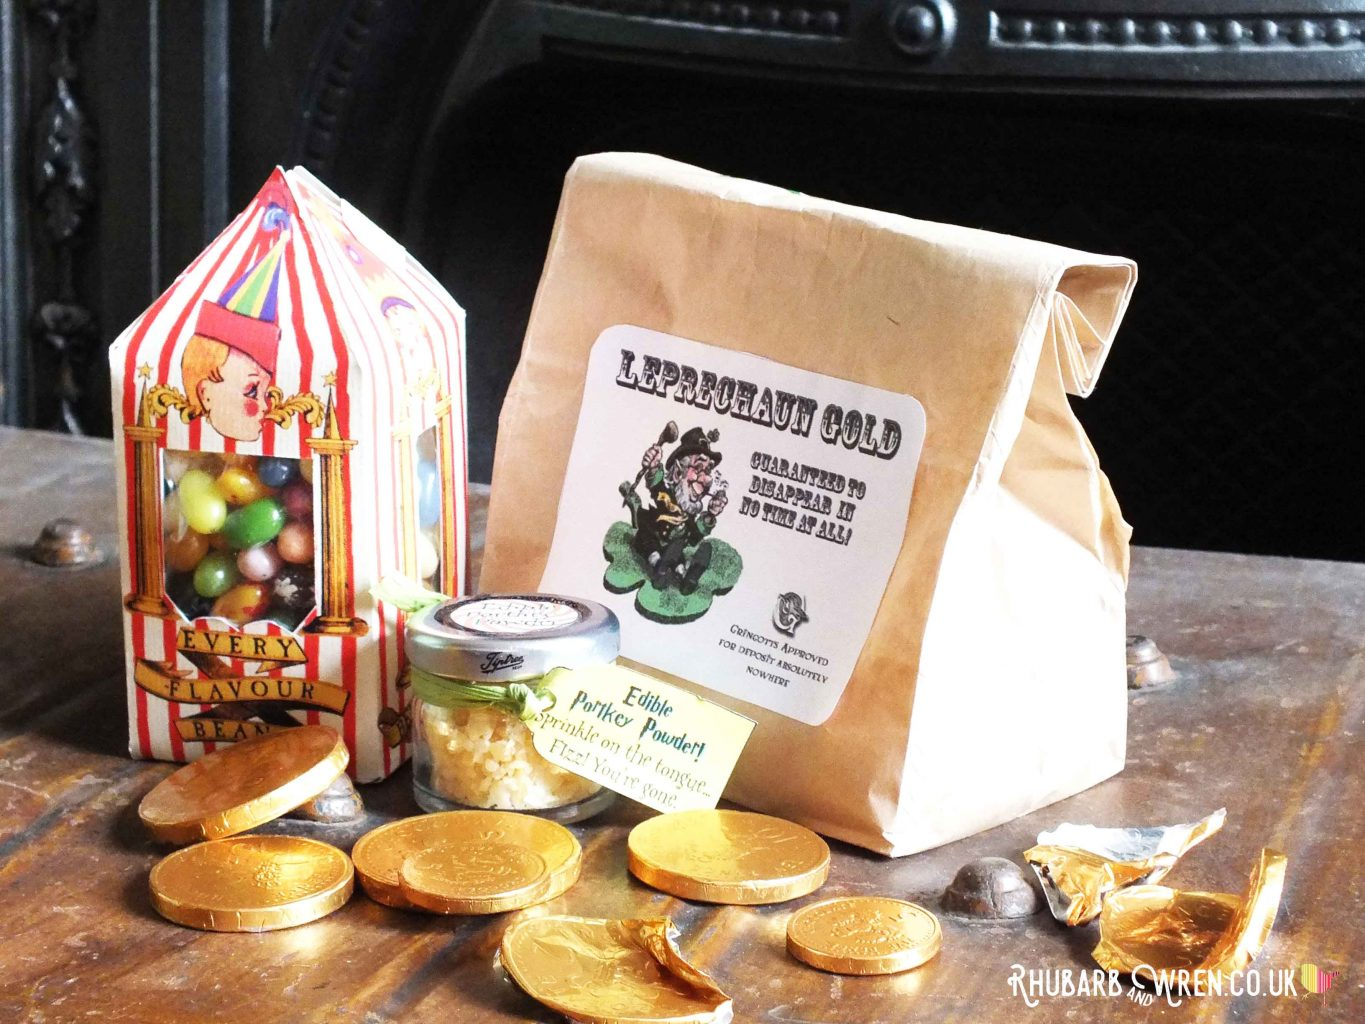 Bertie Botts Beans and Leprechaun gold coins for a DIY Harry Potter party bag